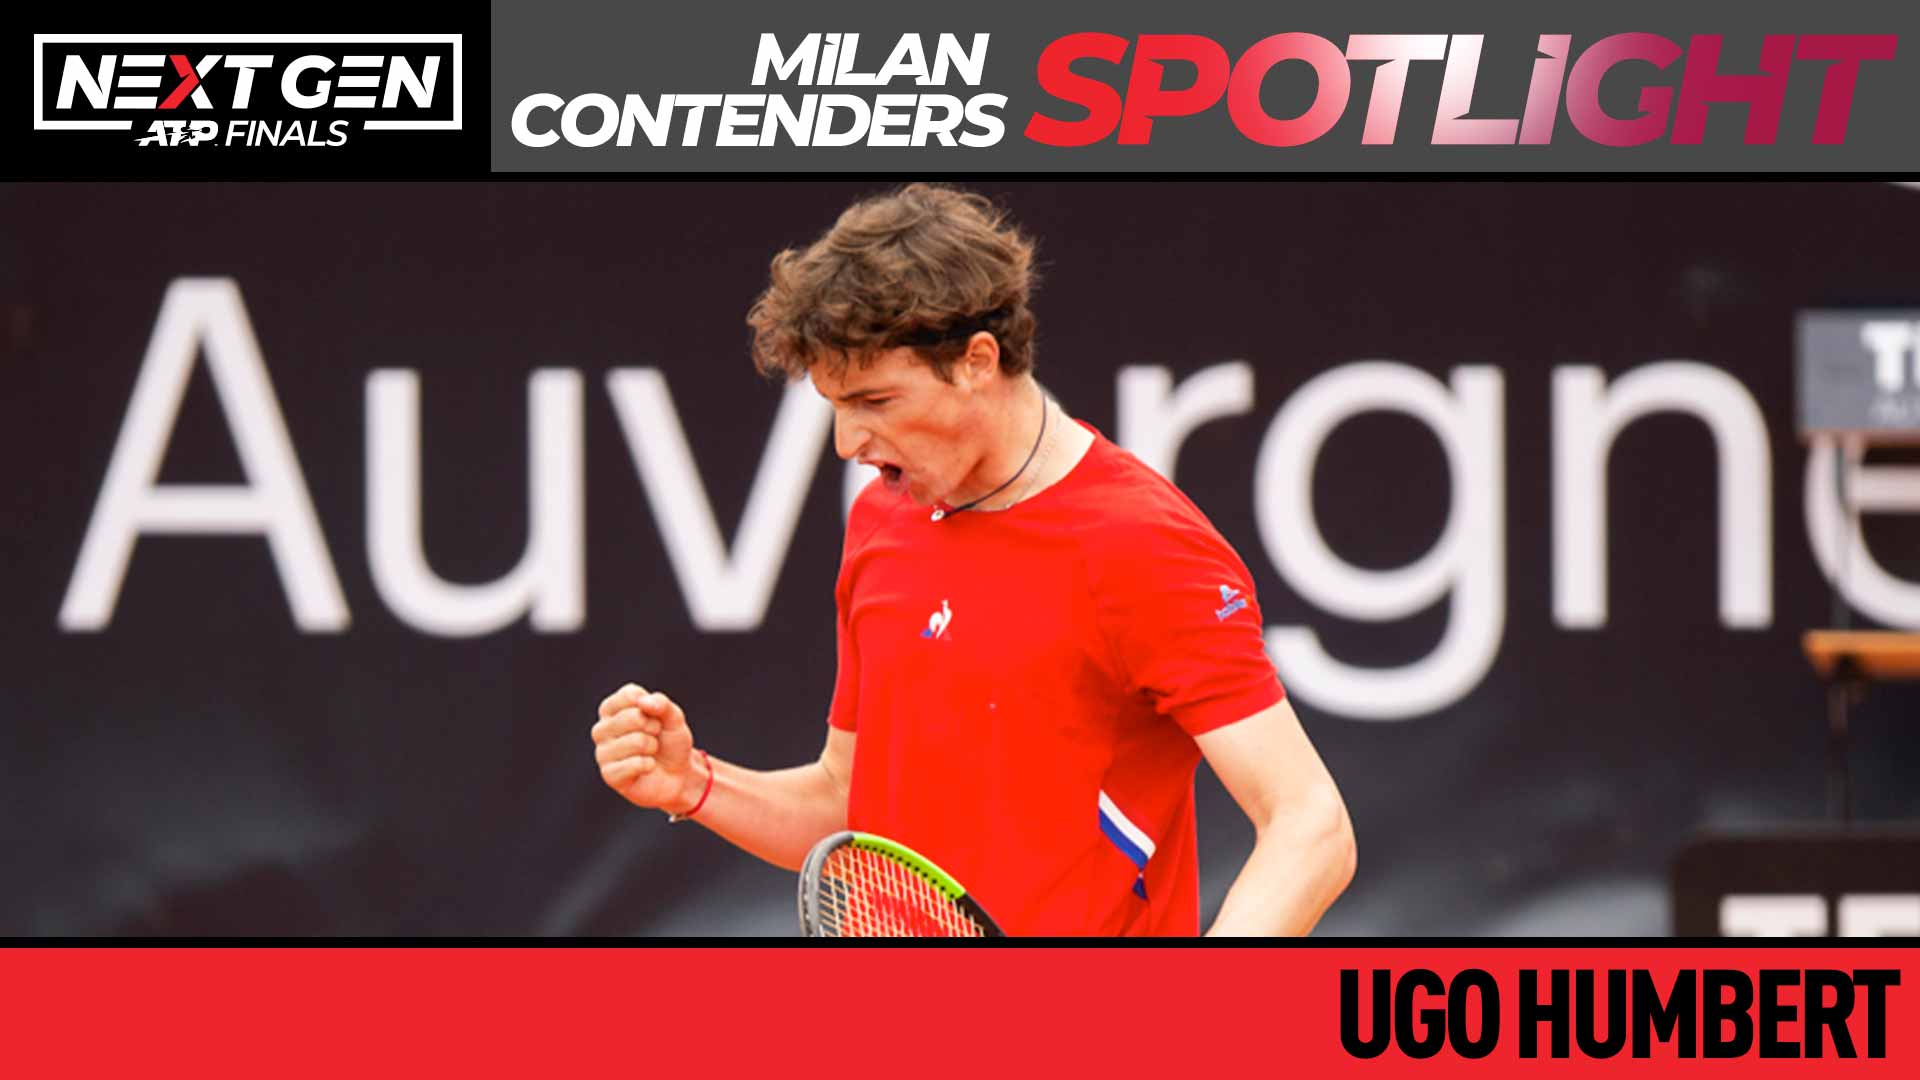 Ugo Humbert will face Denis Shapovalov next in Lyon